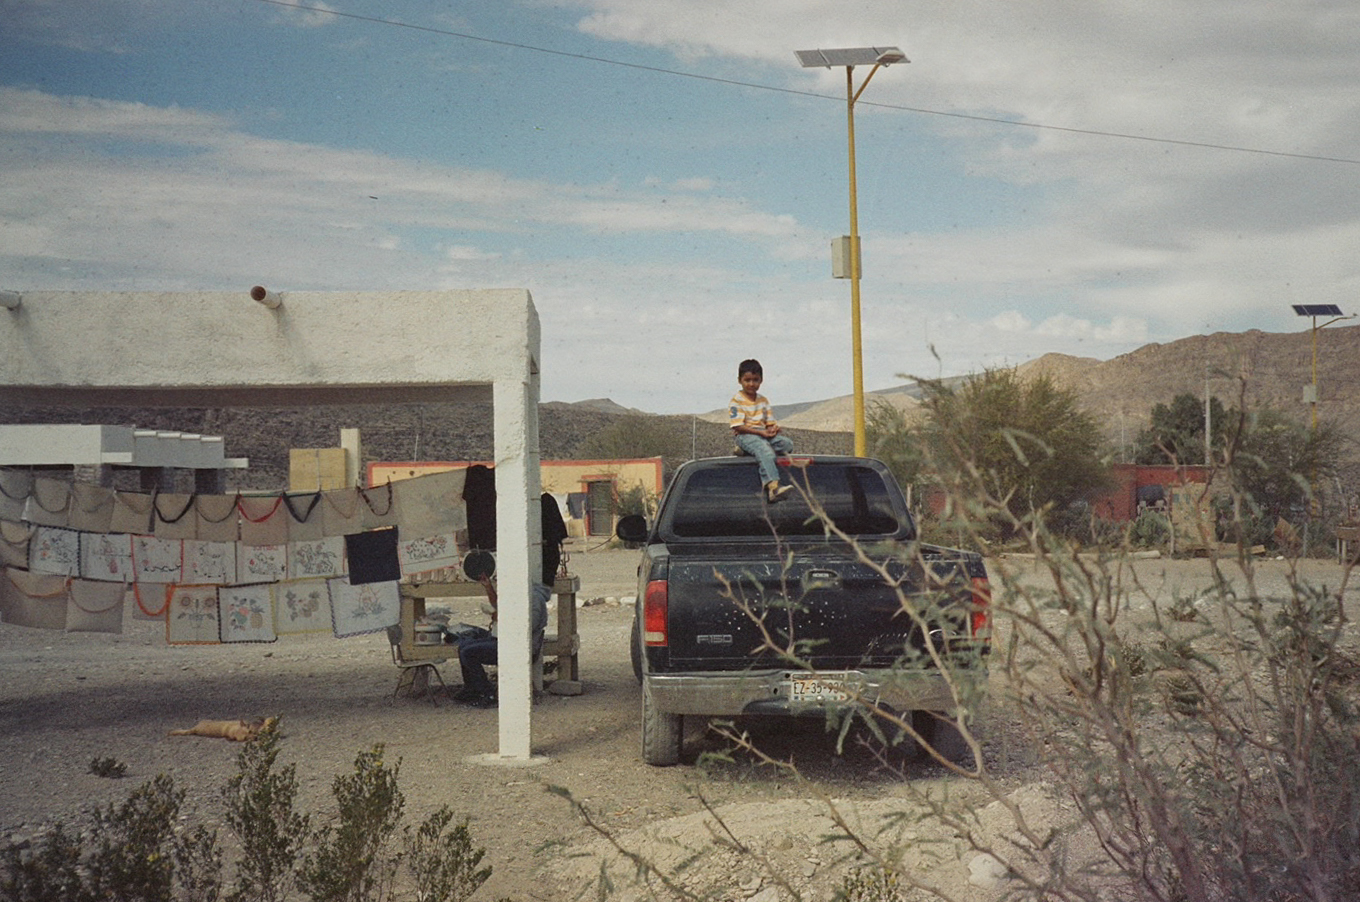 The kid and the car, Boquillas, Mexico, 2017